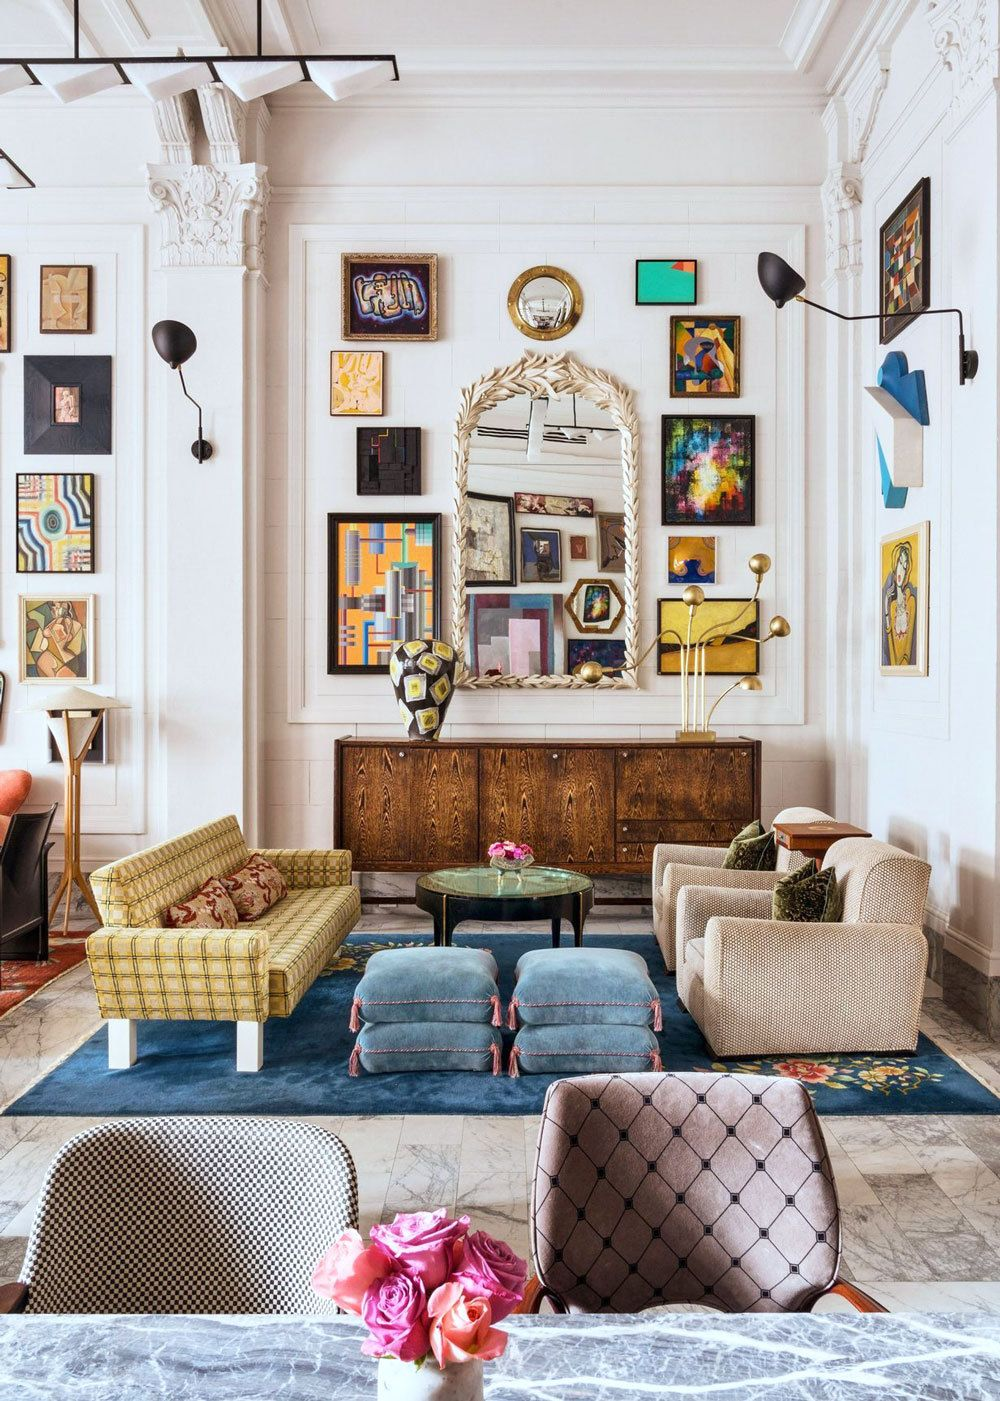 Eclectic Room Design: This Living Room Is The Quintessential Artful Eclectic